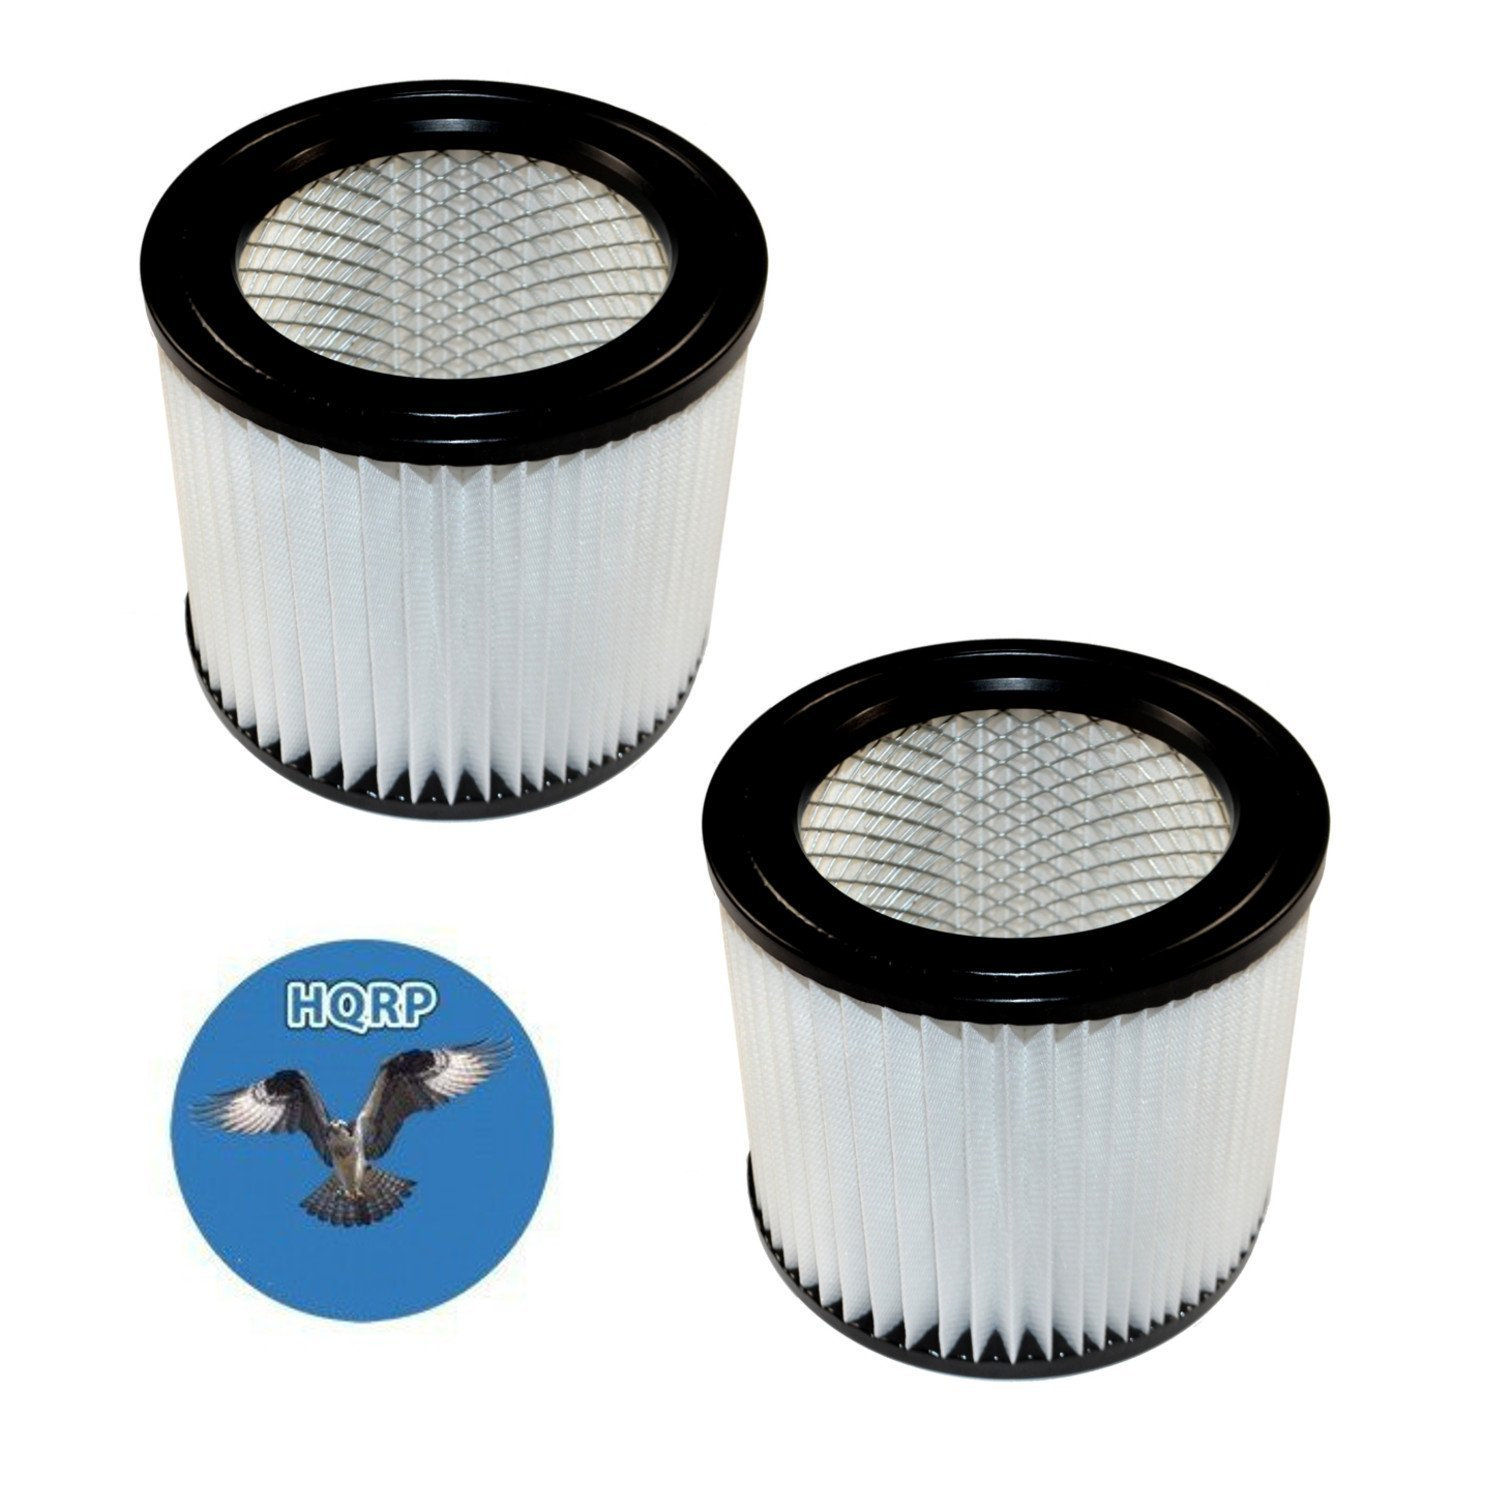 HQRP 2-pack Small Cartridge Filter for Shop-vac 5 gallon HangUp & 1-4 gallon Wet/Dry Vacuums, 90398 Type AA Replacement + HQRP Coaster